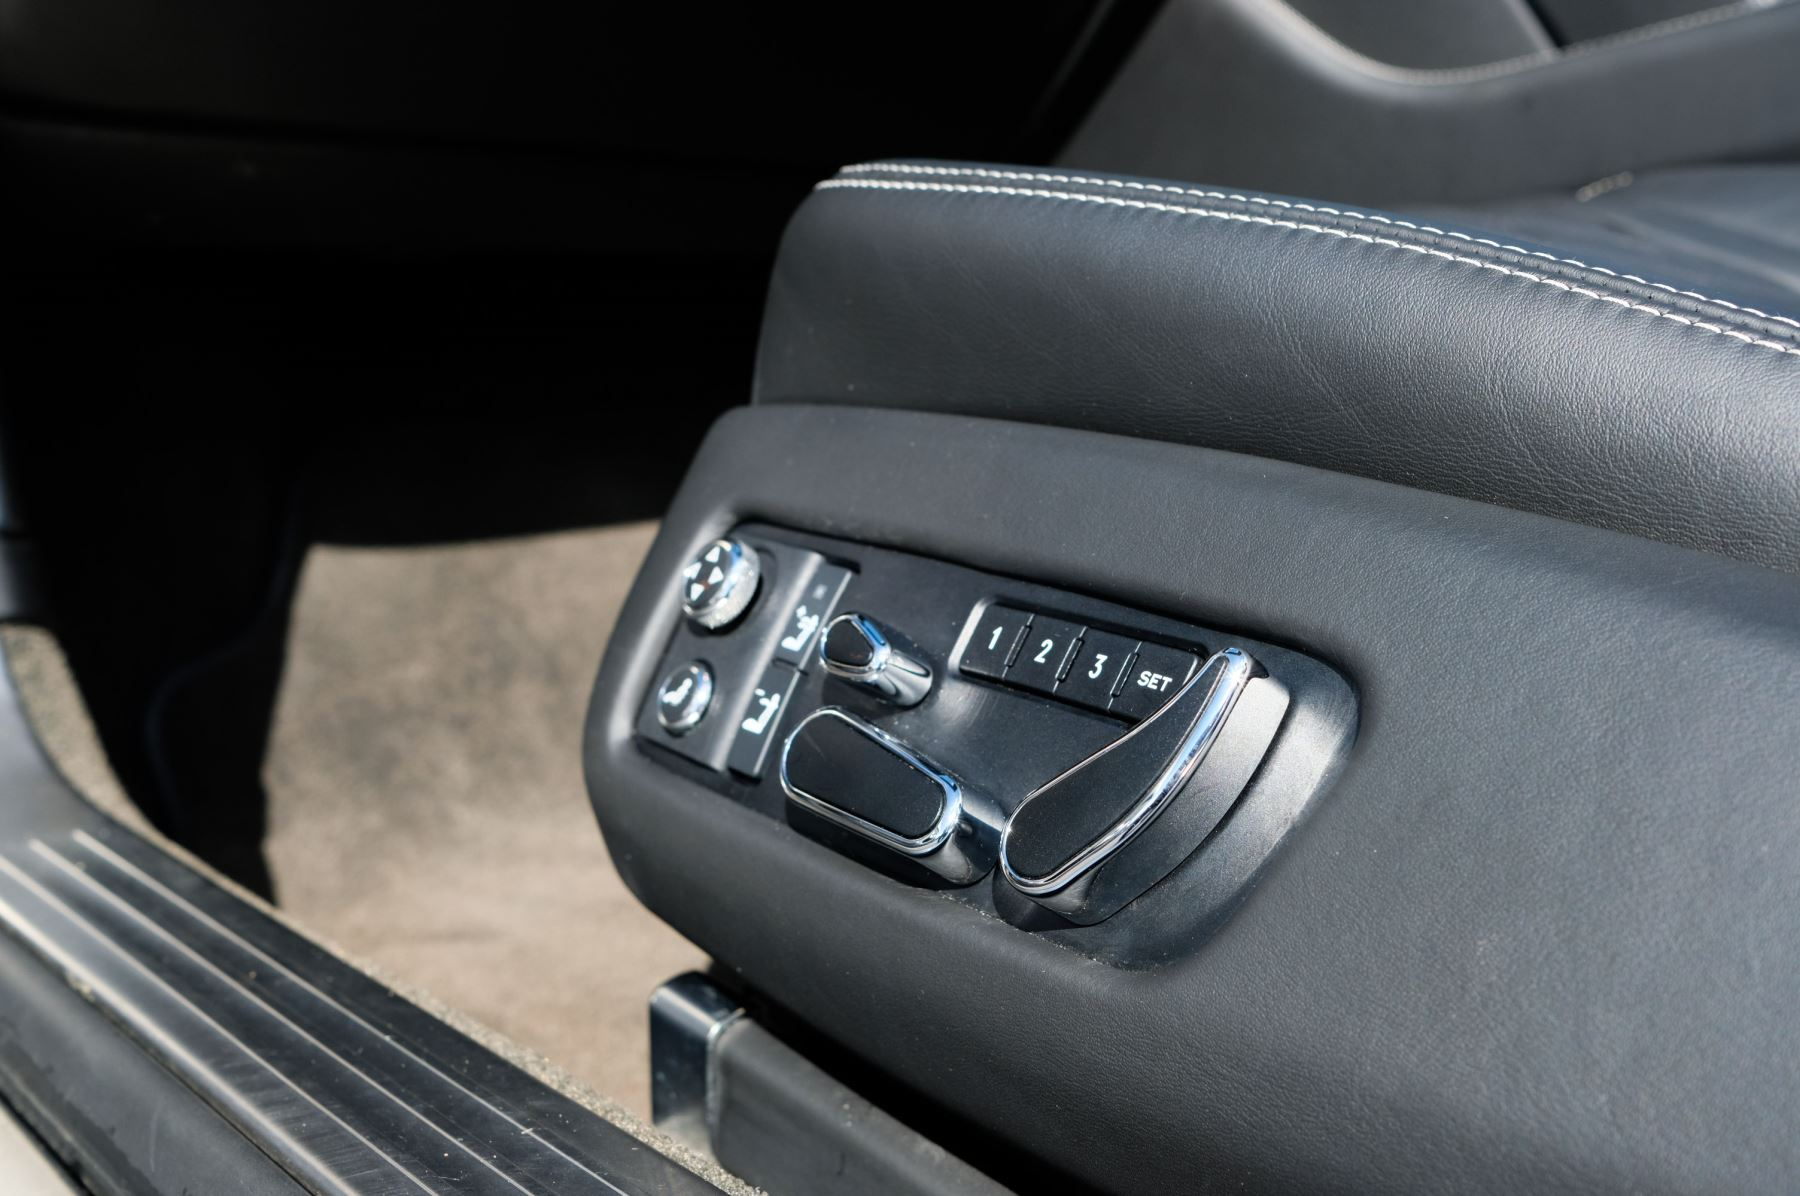 Bentley Continental GTC 4.0 V8 S Mulliner Driving Spec - Ventilated Front Seats with Massage Function image 18